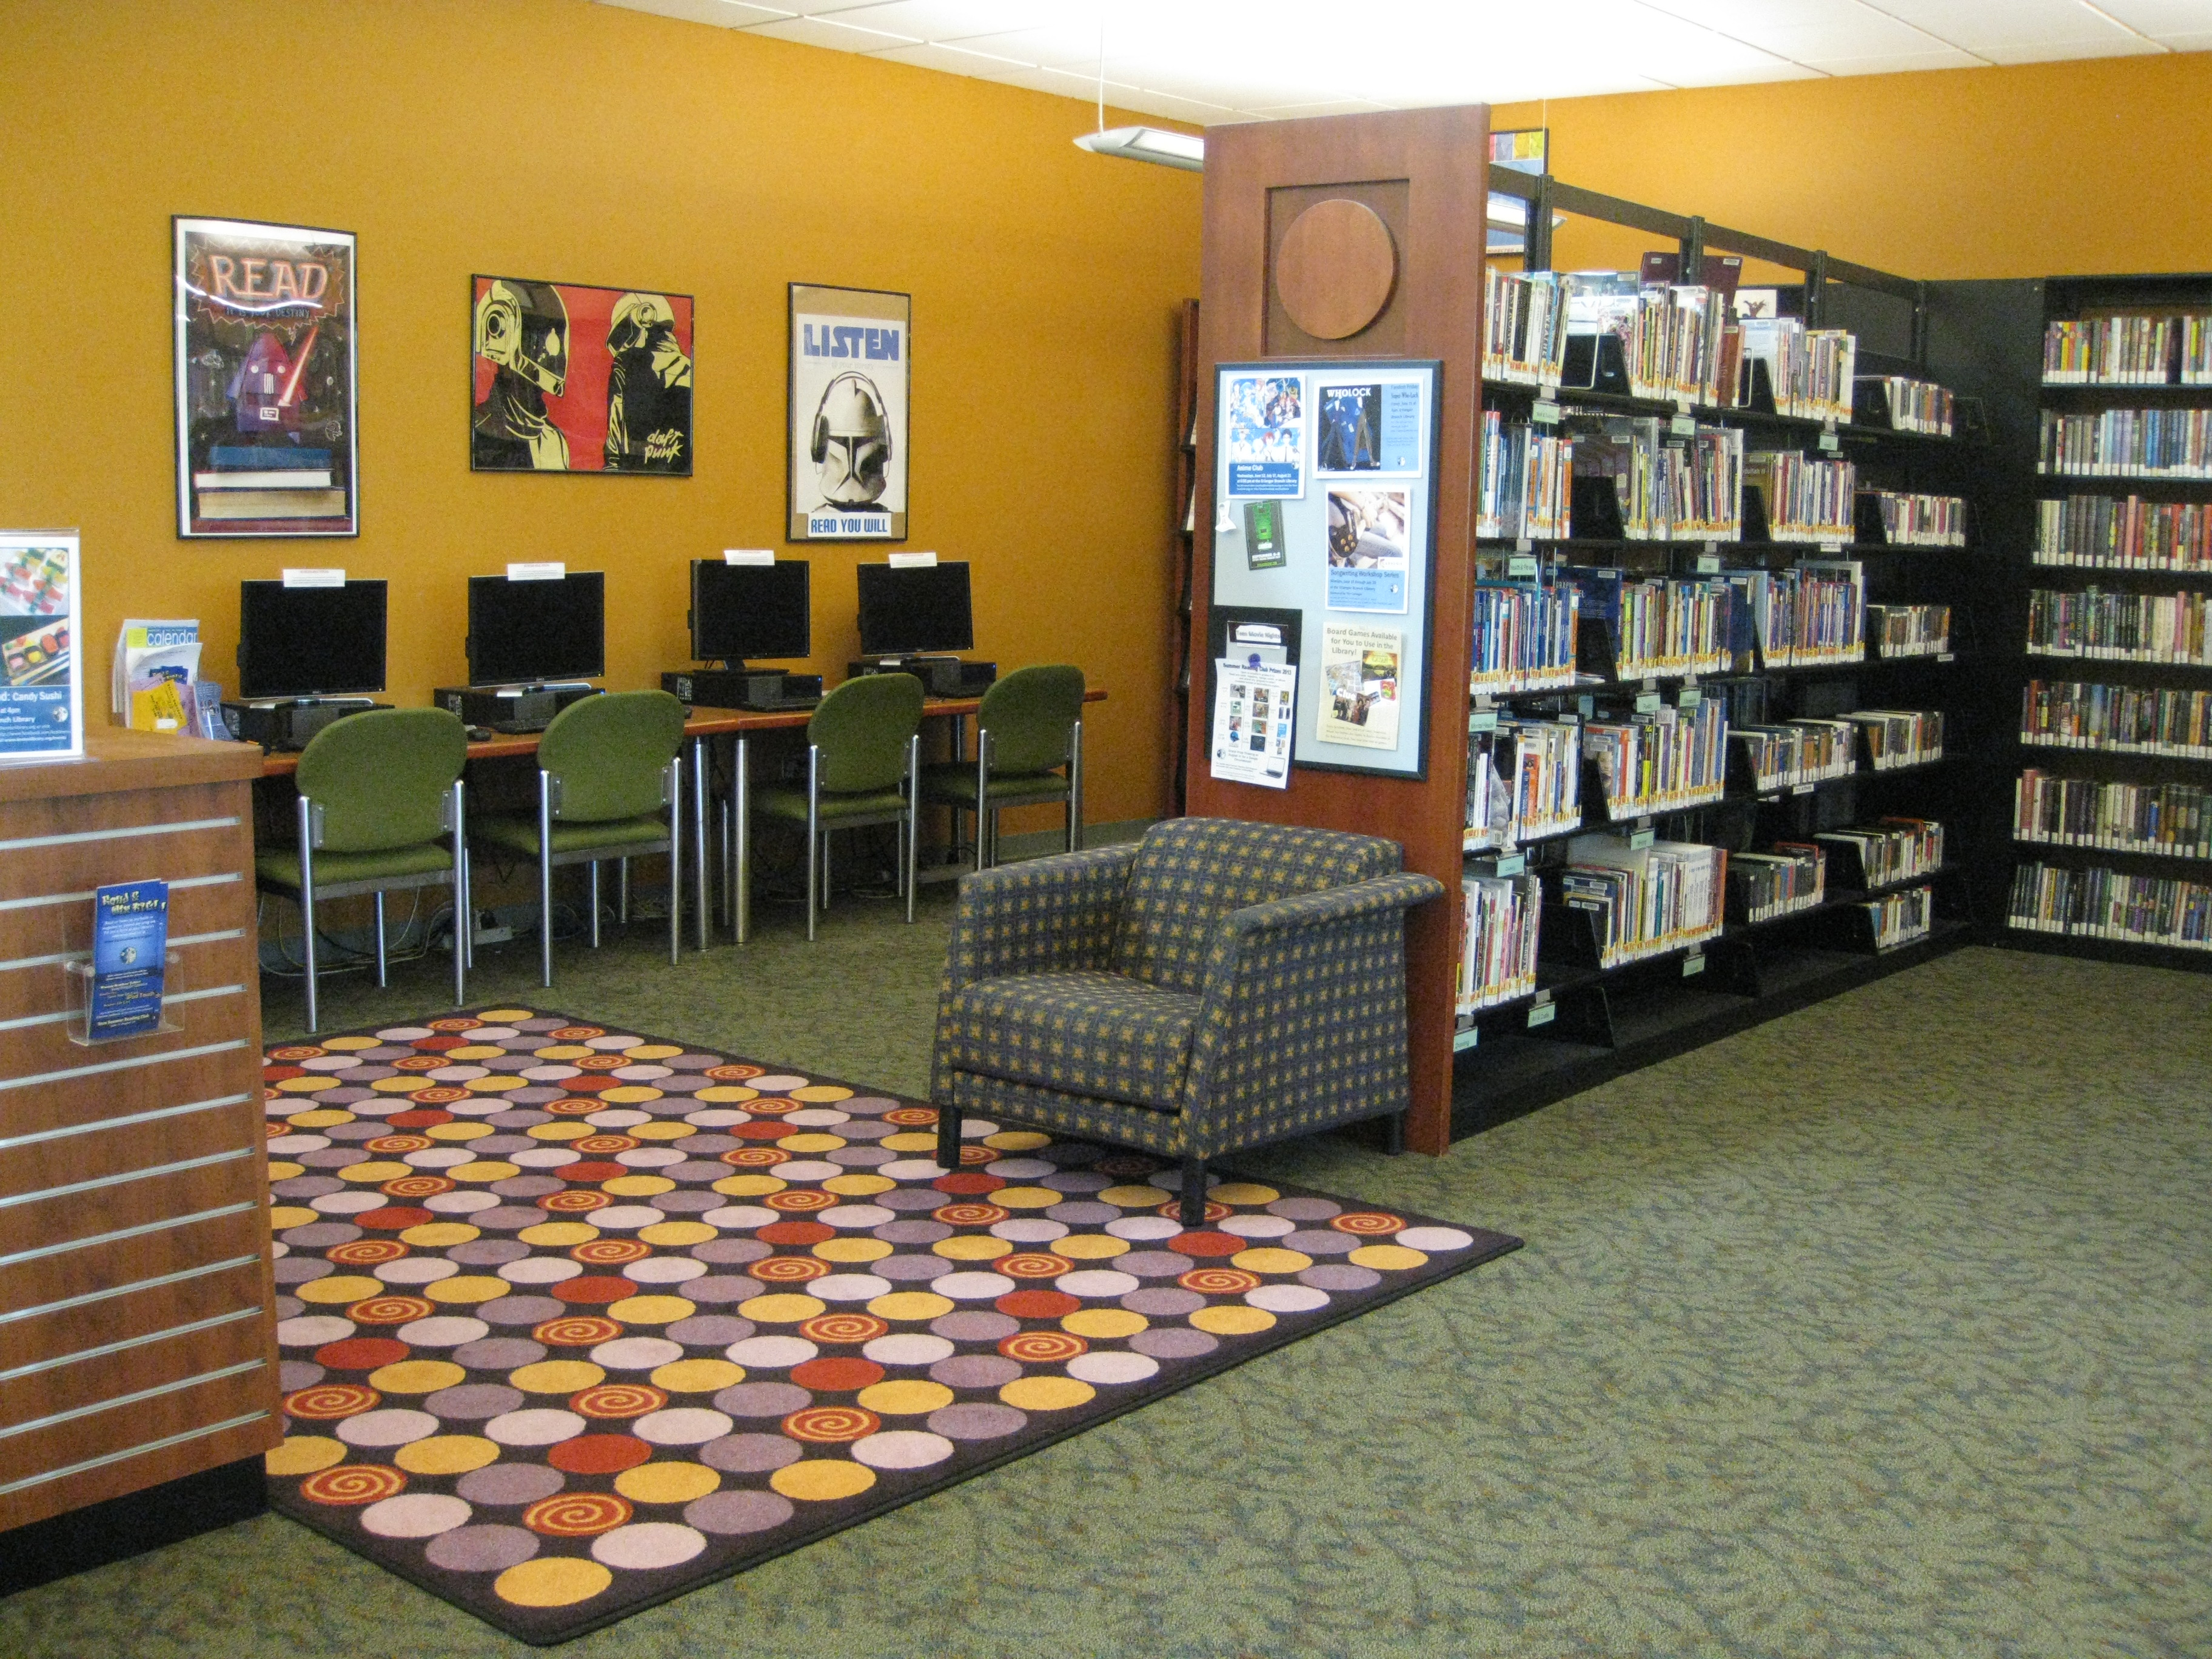 Remarkable www adult library com curiously